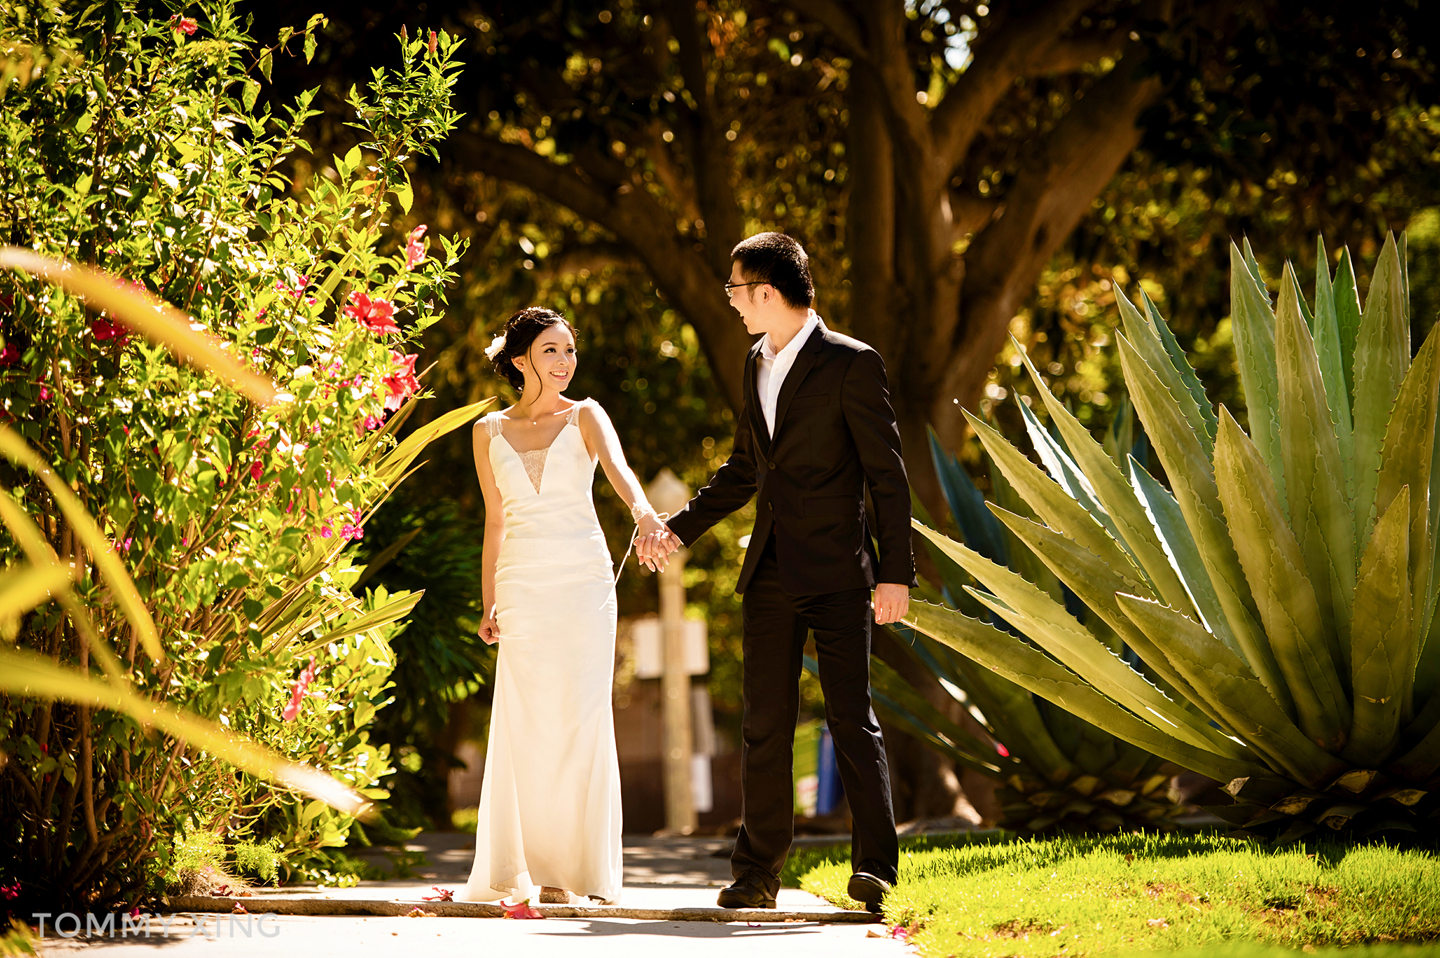 Los Angeles per-wedding 洛杉矶婚纱照 by Tommy Xing Photography 01.jpg